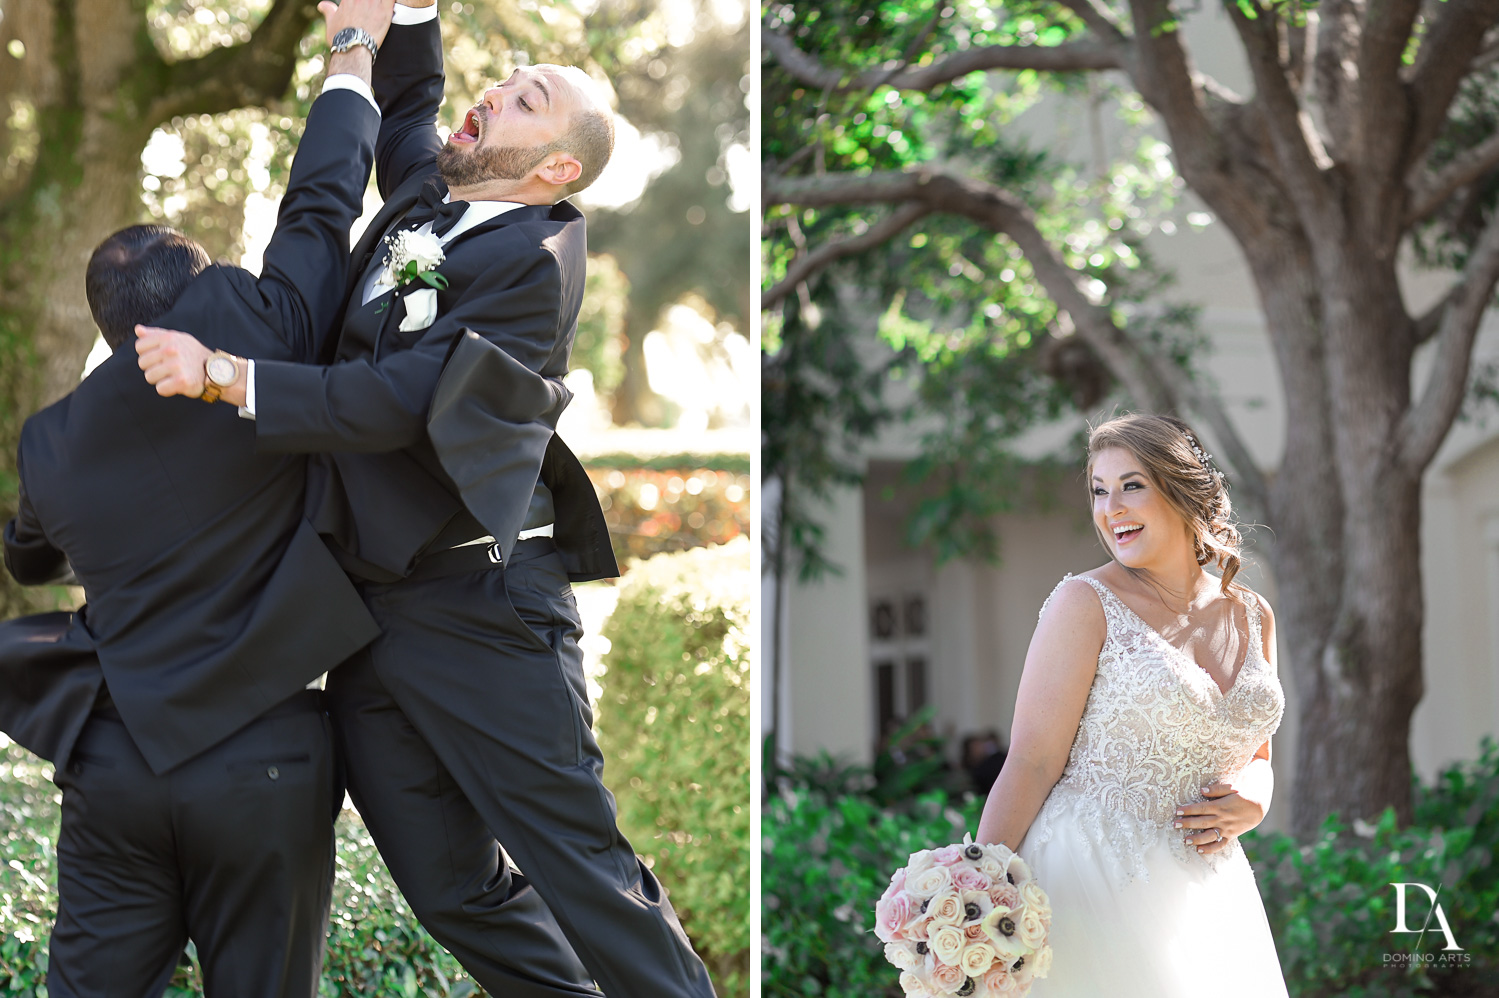 Fun candid pictures at Romantic Outdoors Wedding at Woodfield Country Club in Boca Raton, Florida by Domino Arts Photography